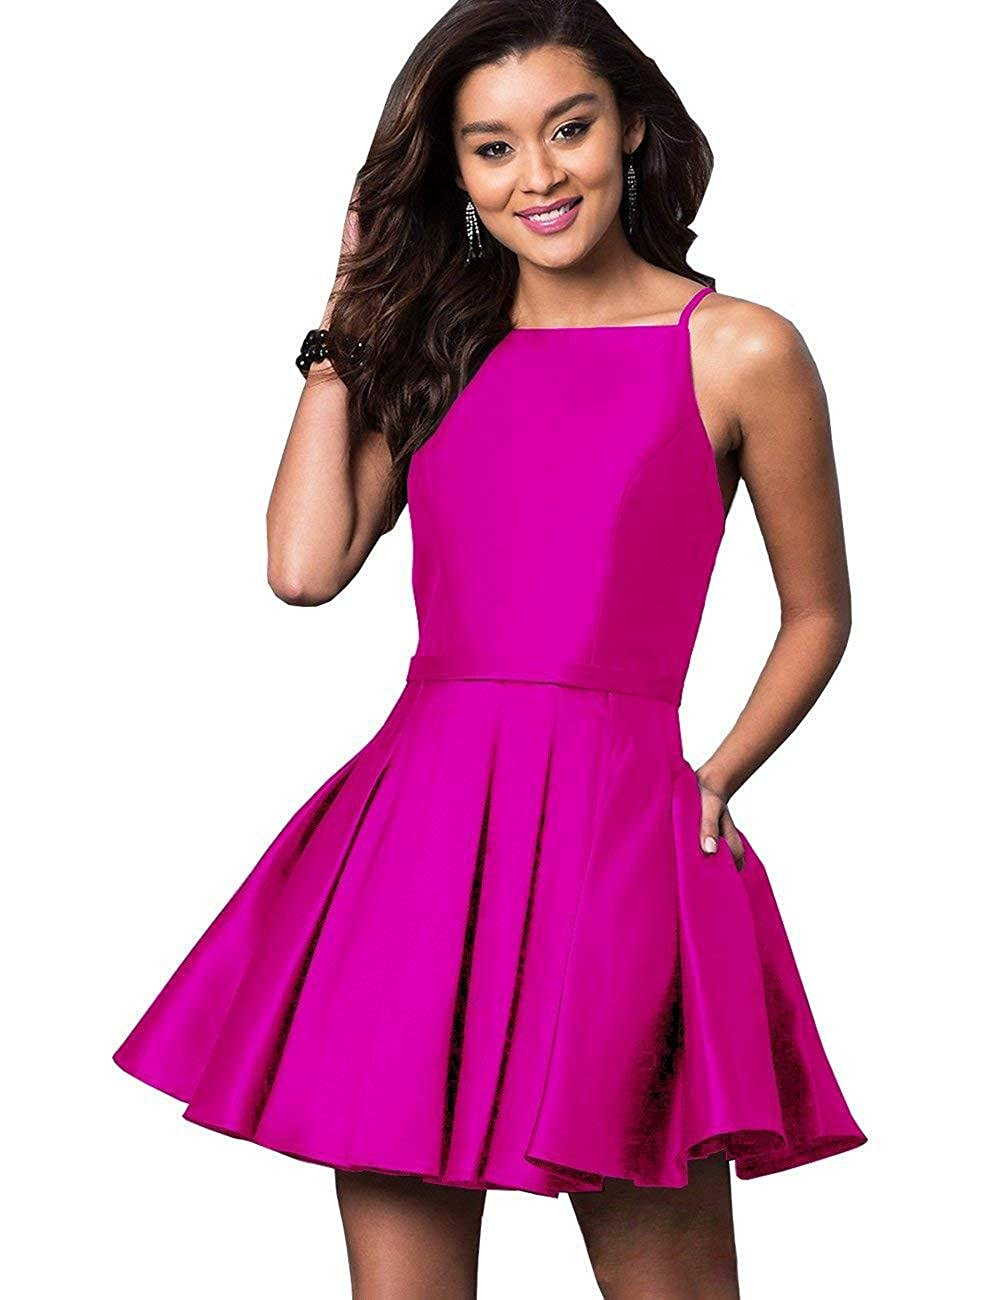 Fuchsia NewFex Homecoming Dresses Satin Spaghetti Strap 2018 Aline Short Prom Gown with Pockets